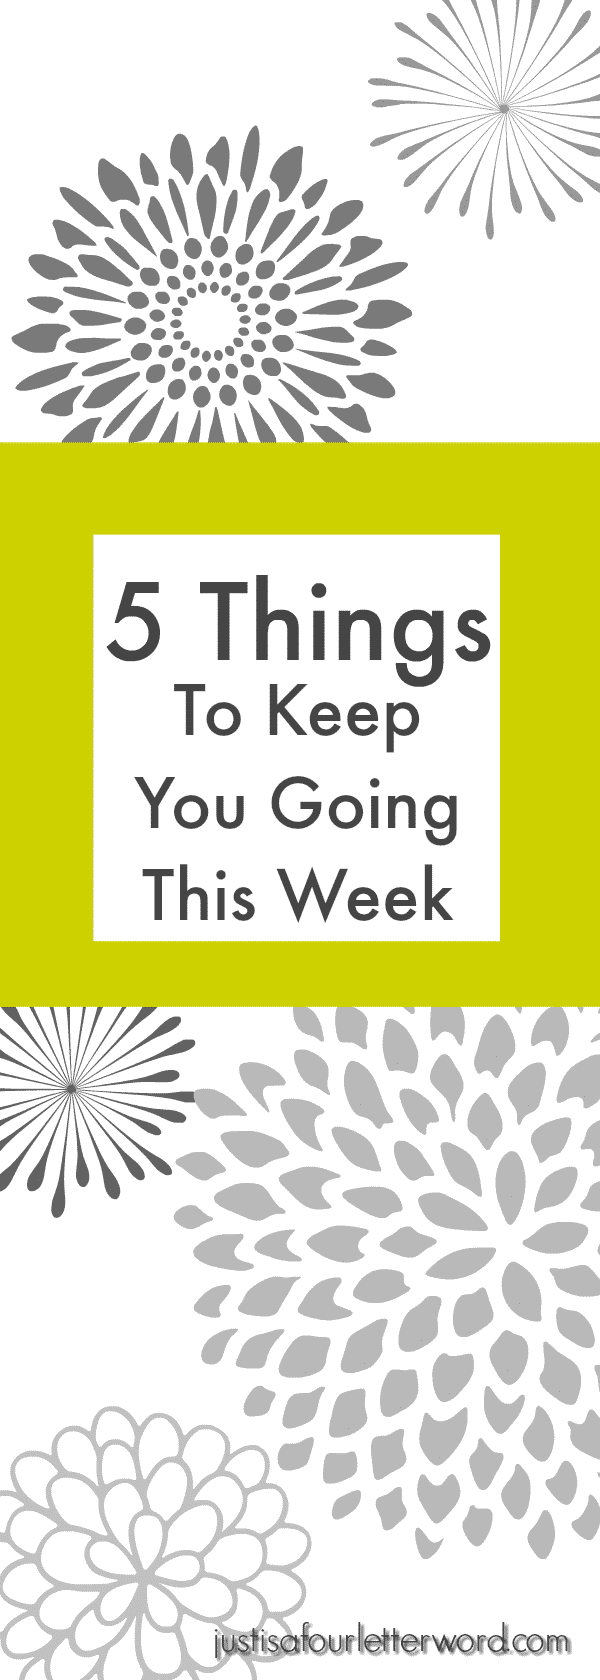 5 Things to Keep You Going This Week